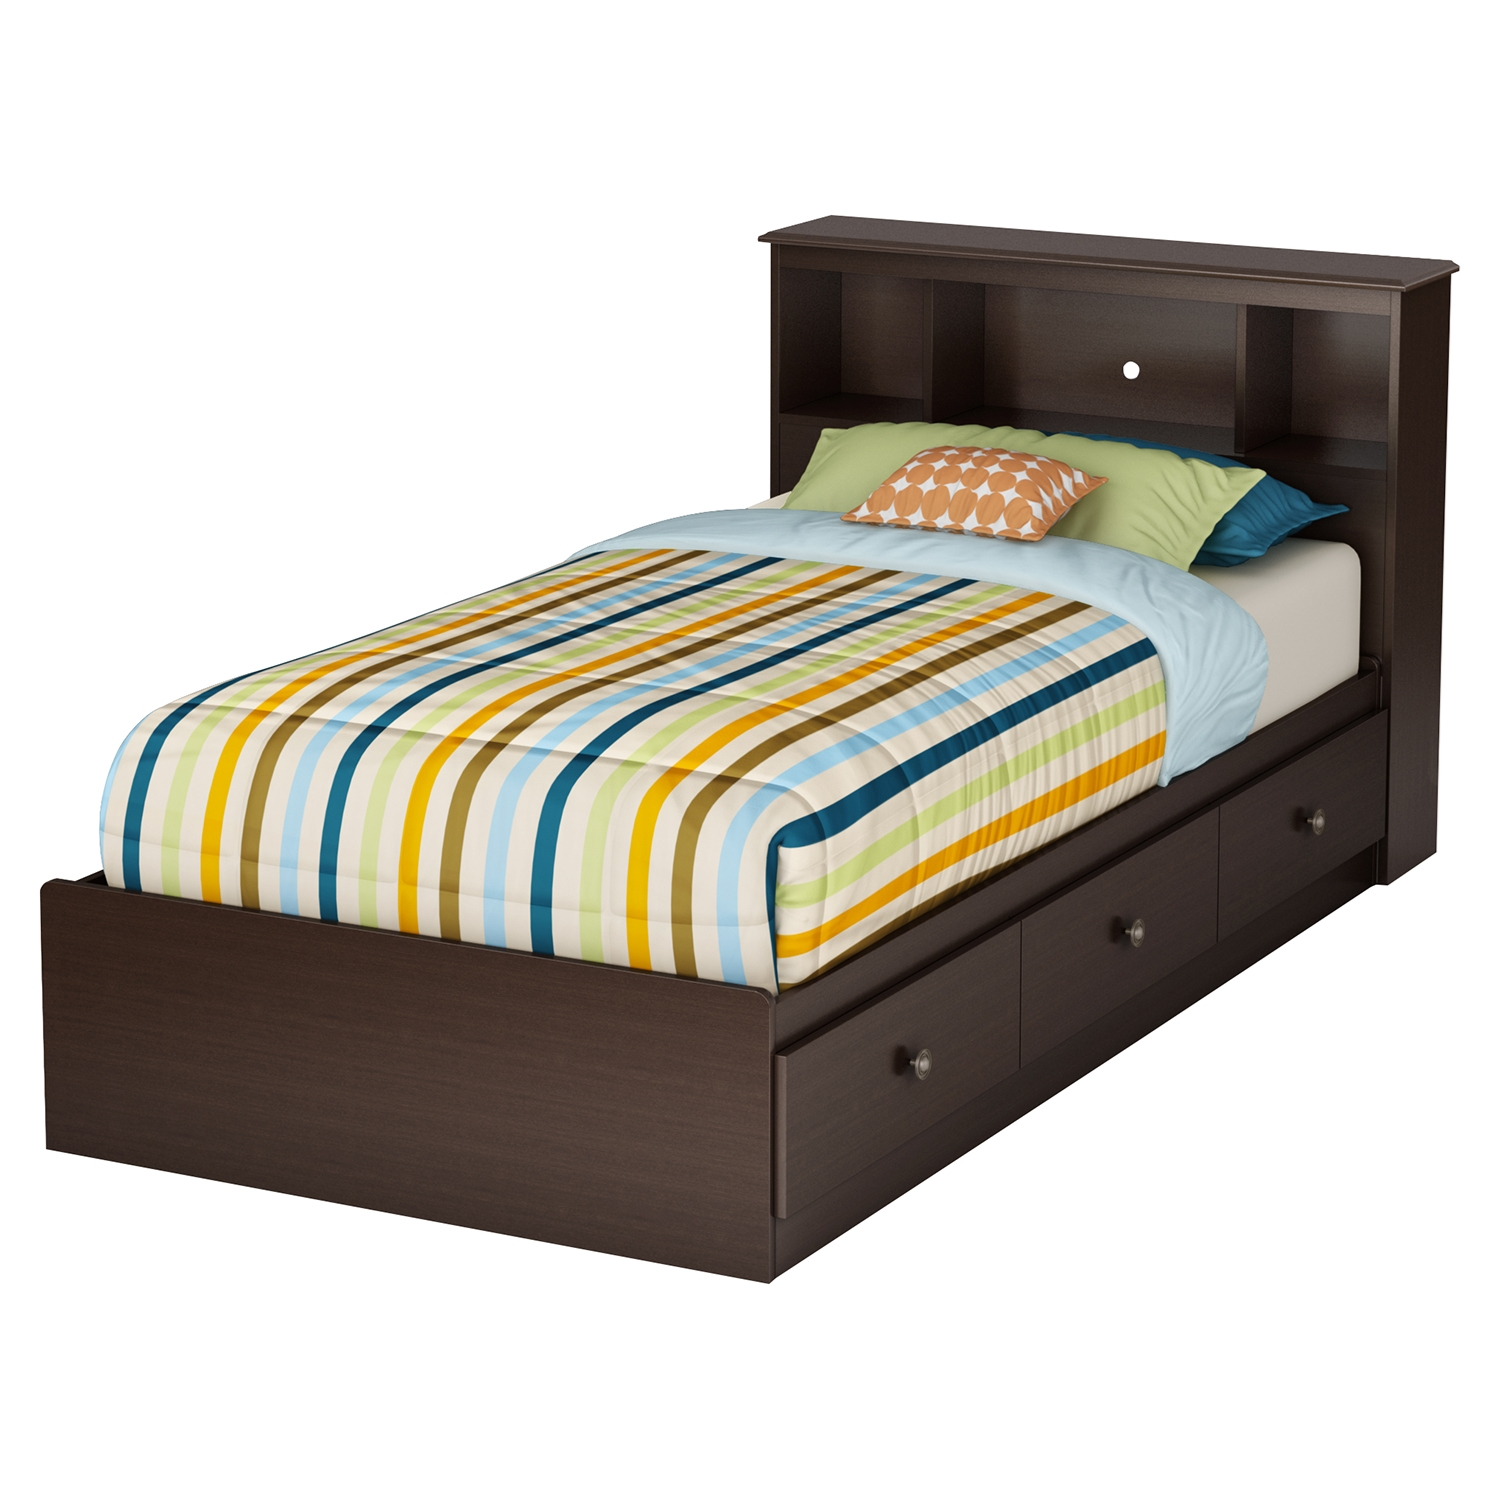 Zach Twin Mates Bedroom Set - 3 Drawers, Chocolate - SS-35690-SET